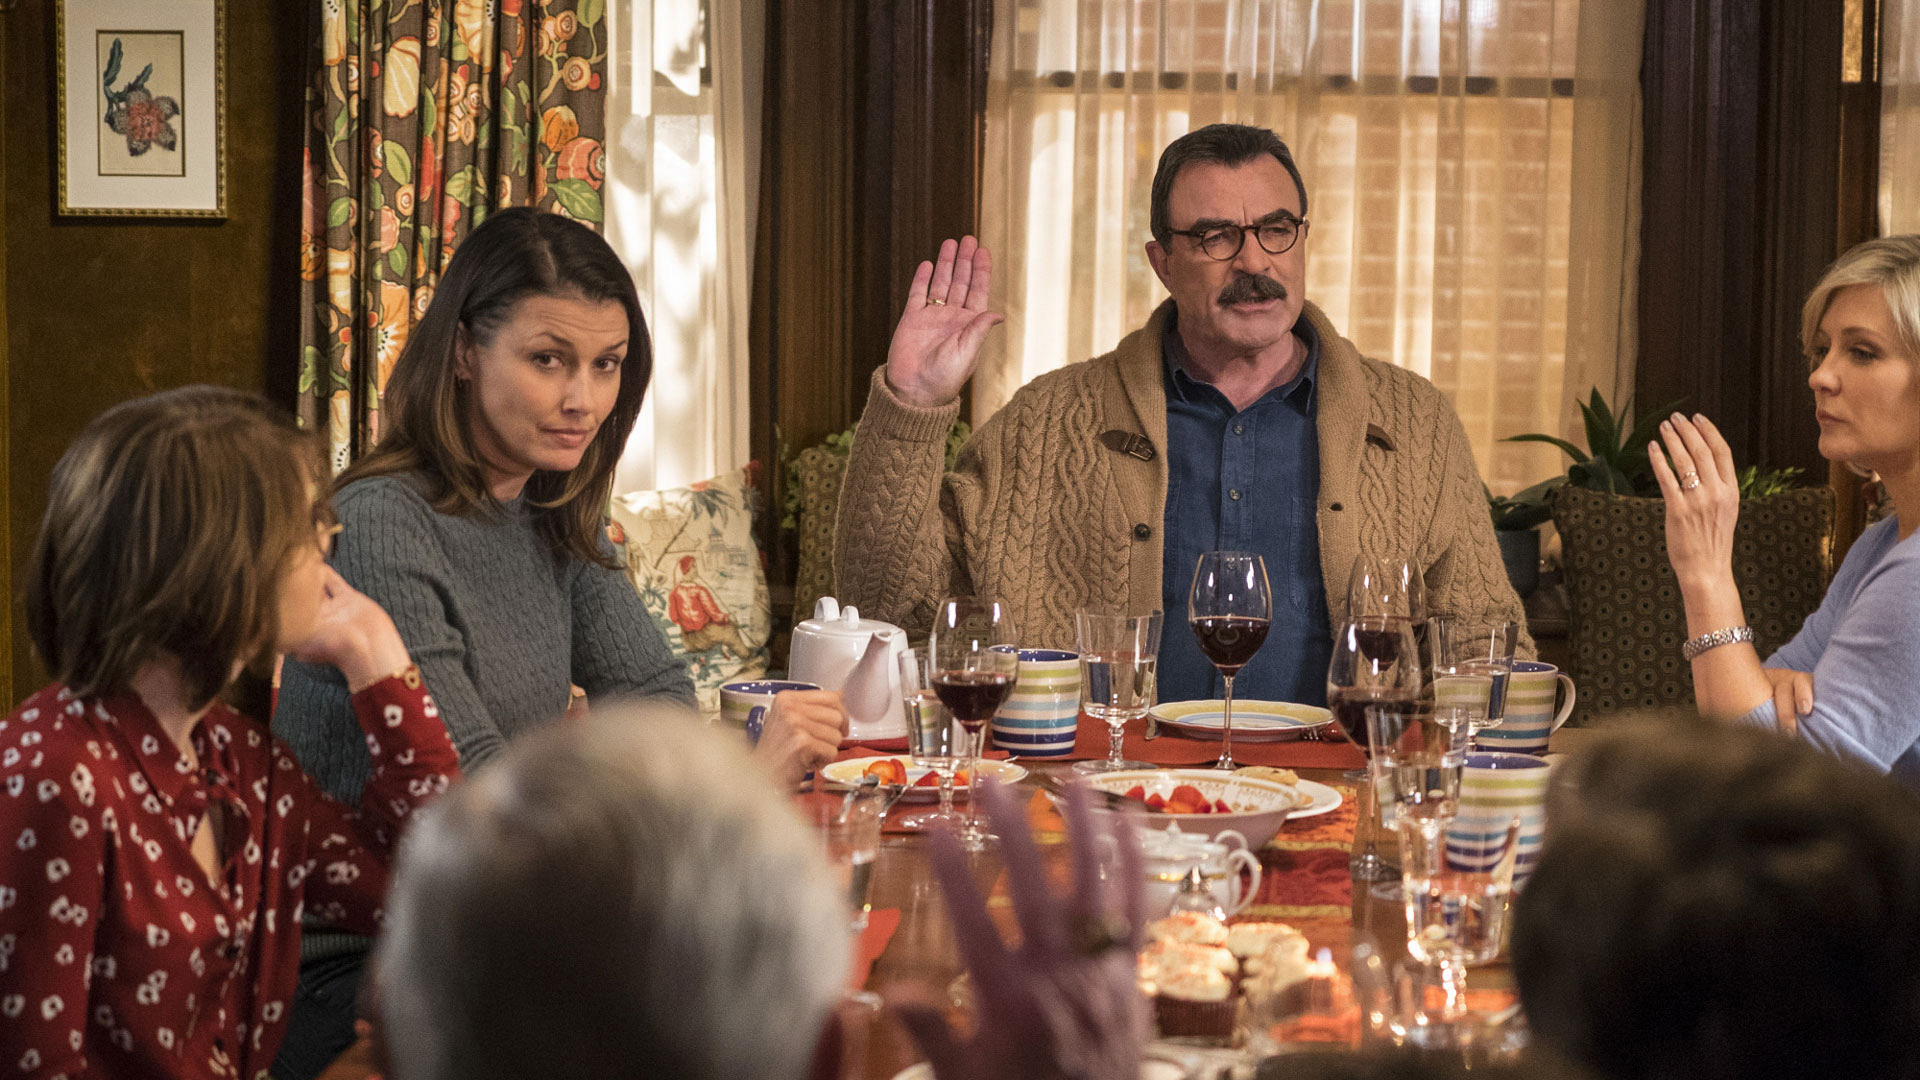 Bridget Moynahan as Erin Reagan and Tom Selleck as Frank Reagan